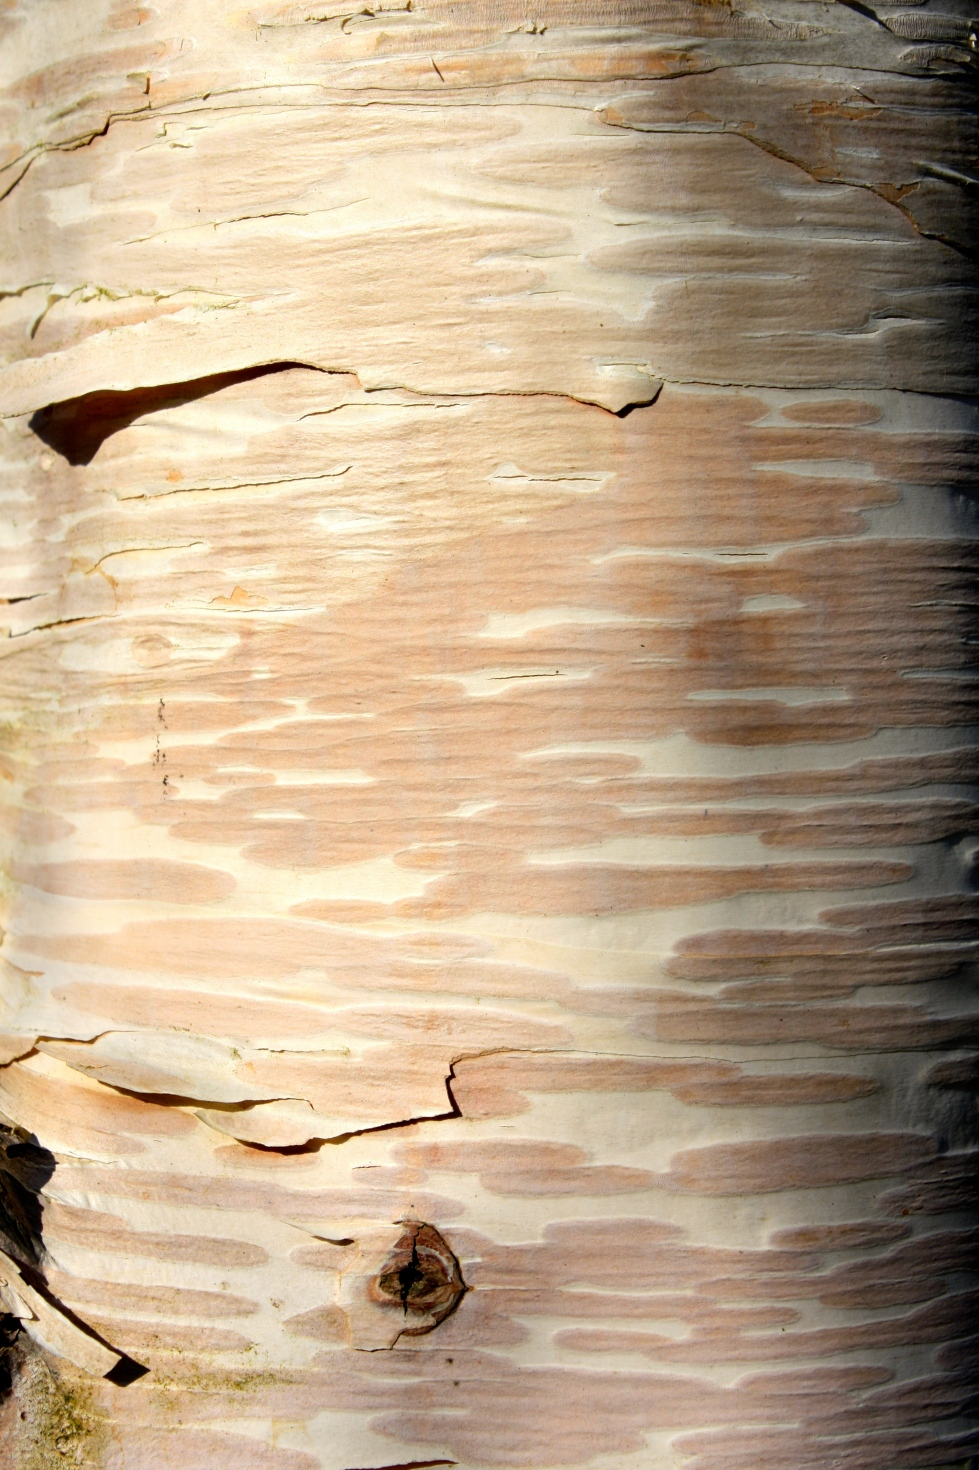 Betula ermanii 'Grayswood Hill' bark, Bluebell Nursery, March 2014